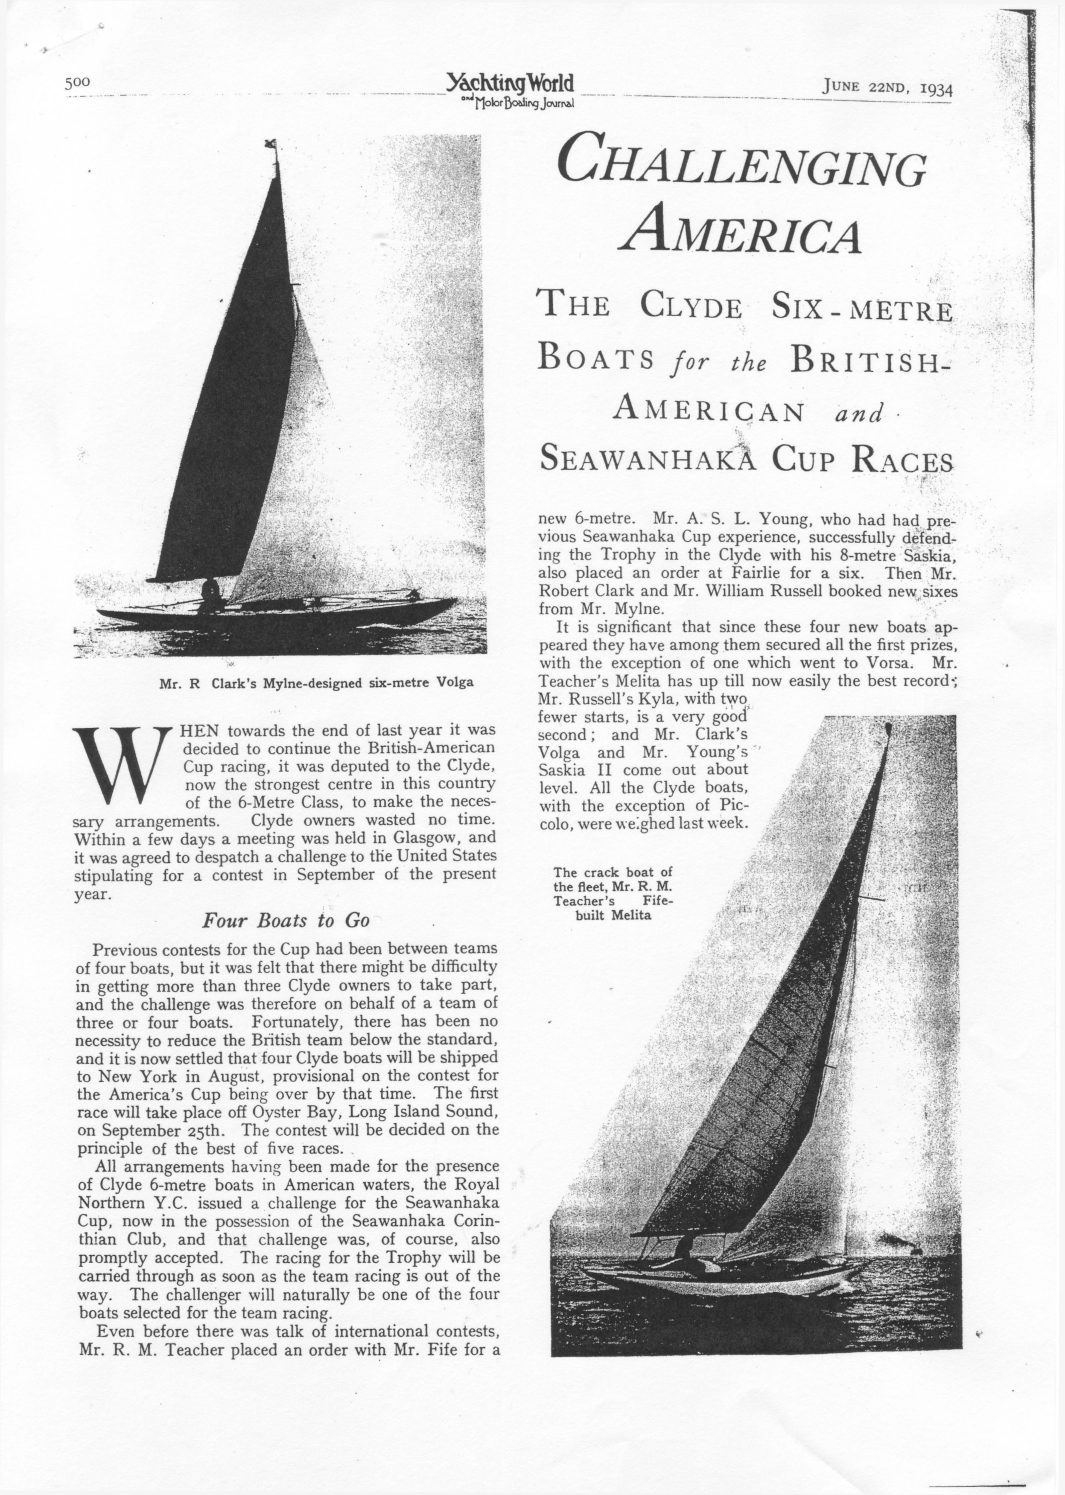 Yachting World, June 1934